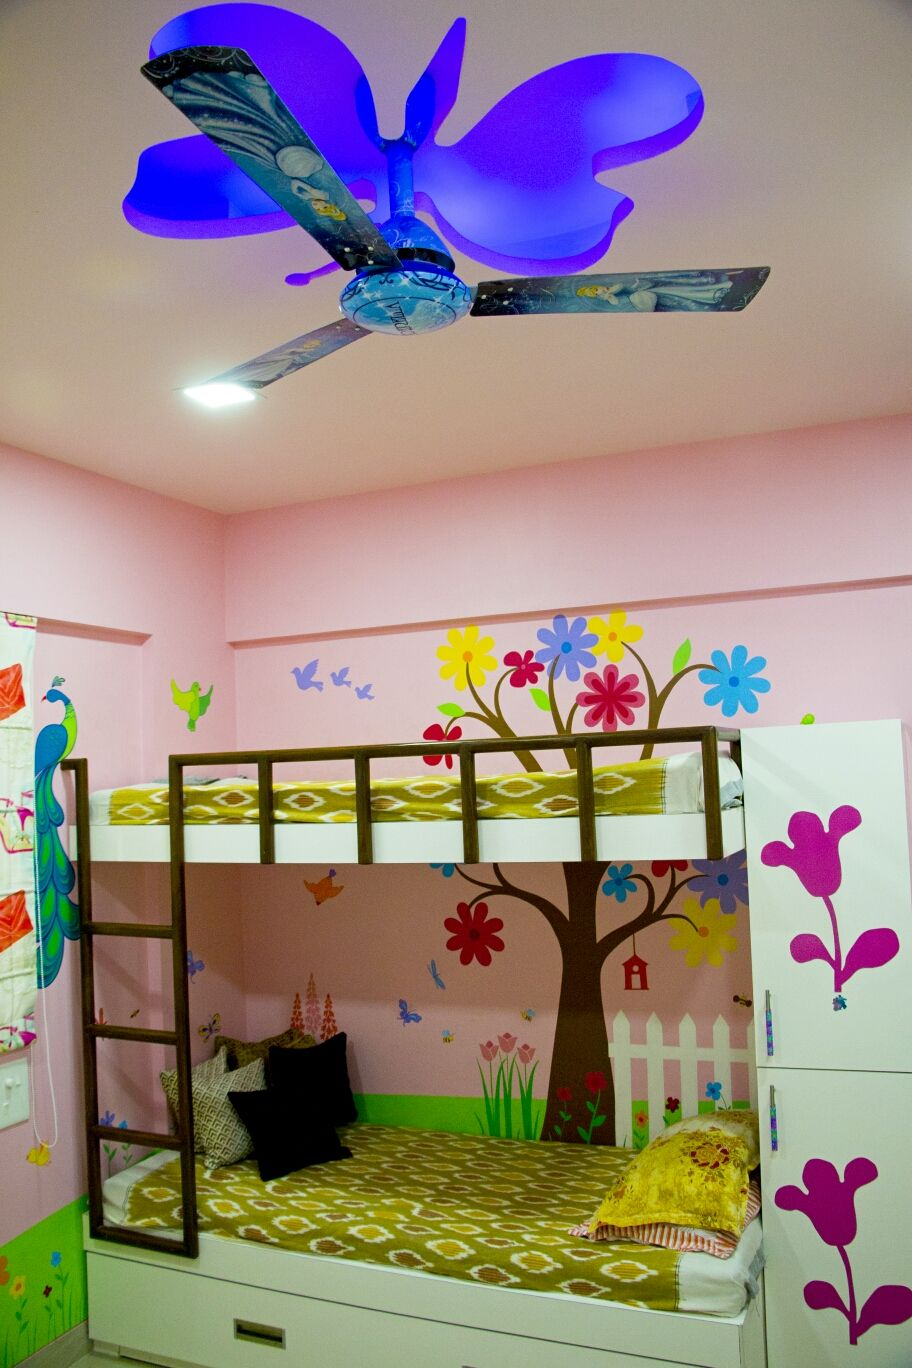 Kids Room False Ceiling Design: False Ceiling Design In Children Room By #Alacritys